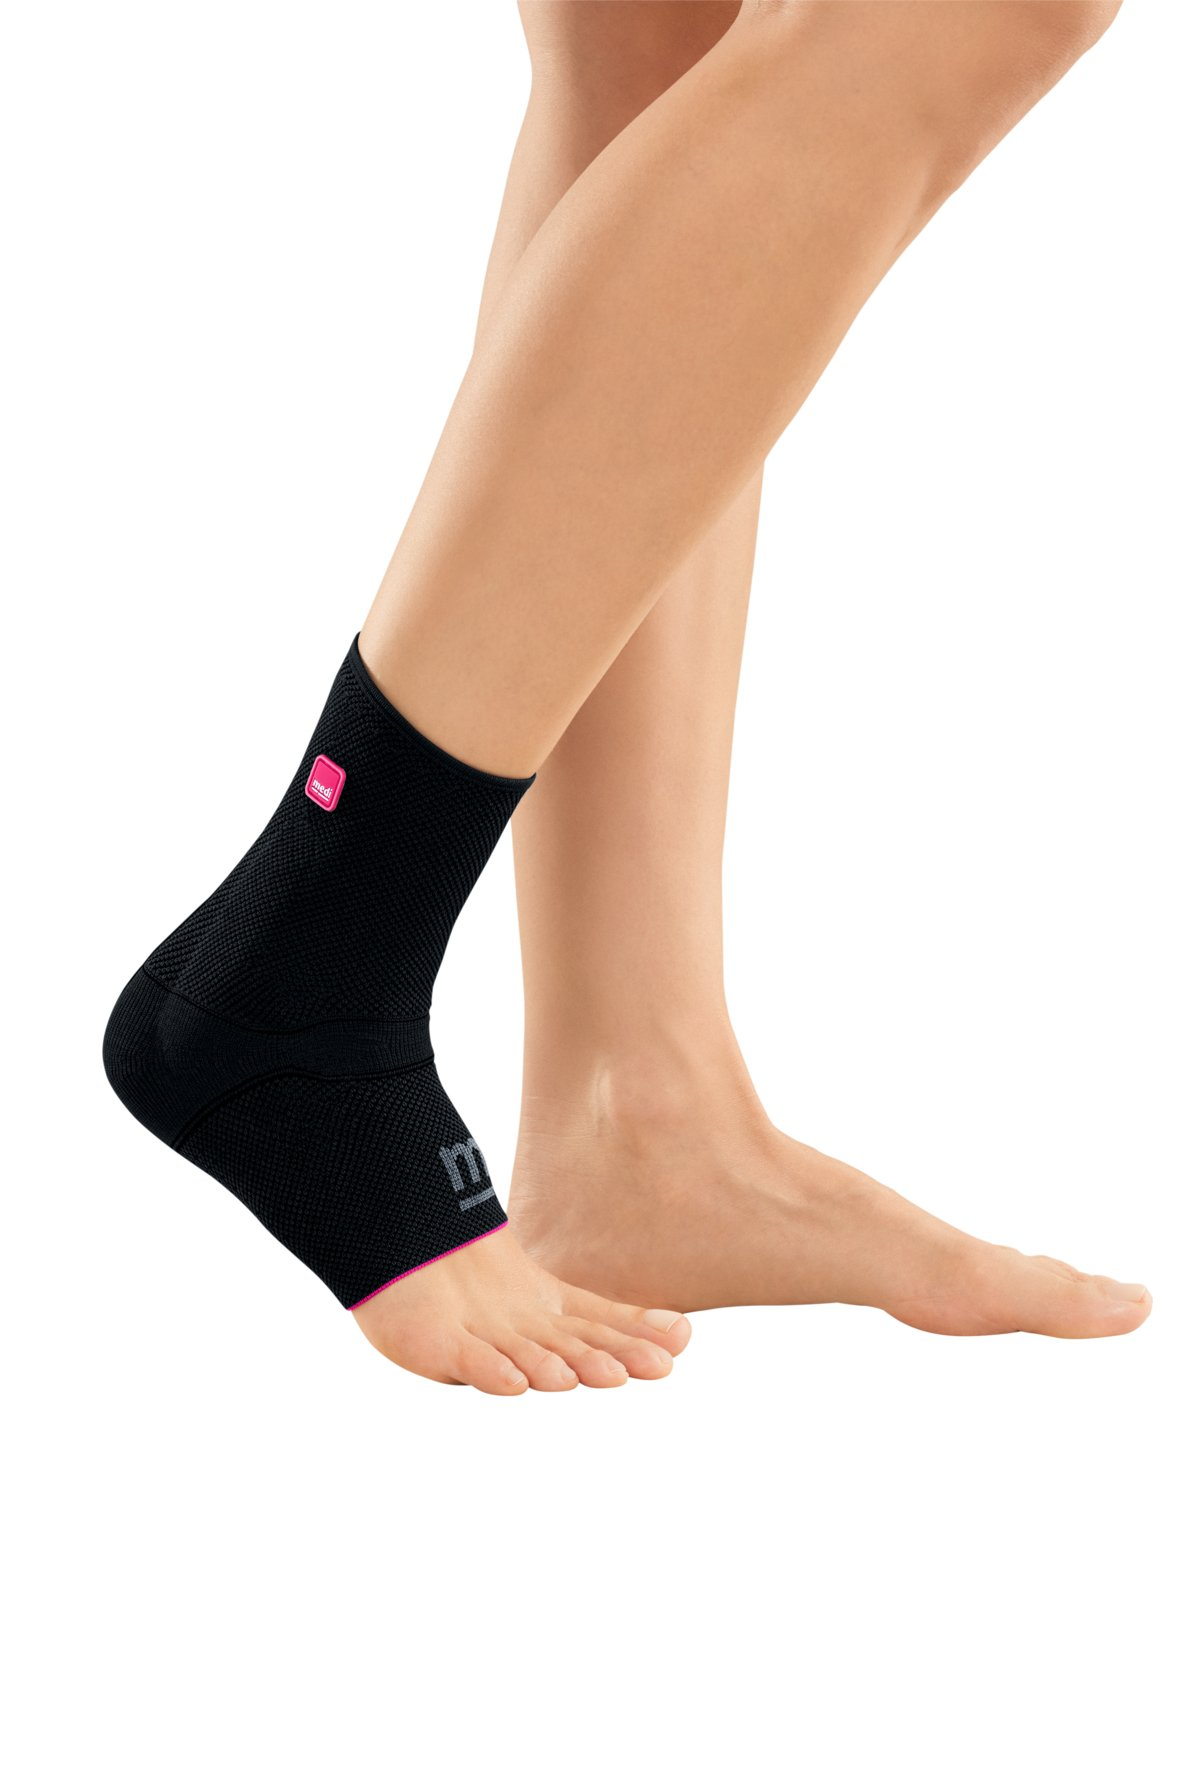 Medi Levamed Knit Ankle Support (Black) Size III